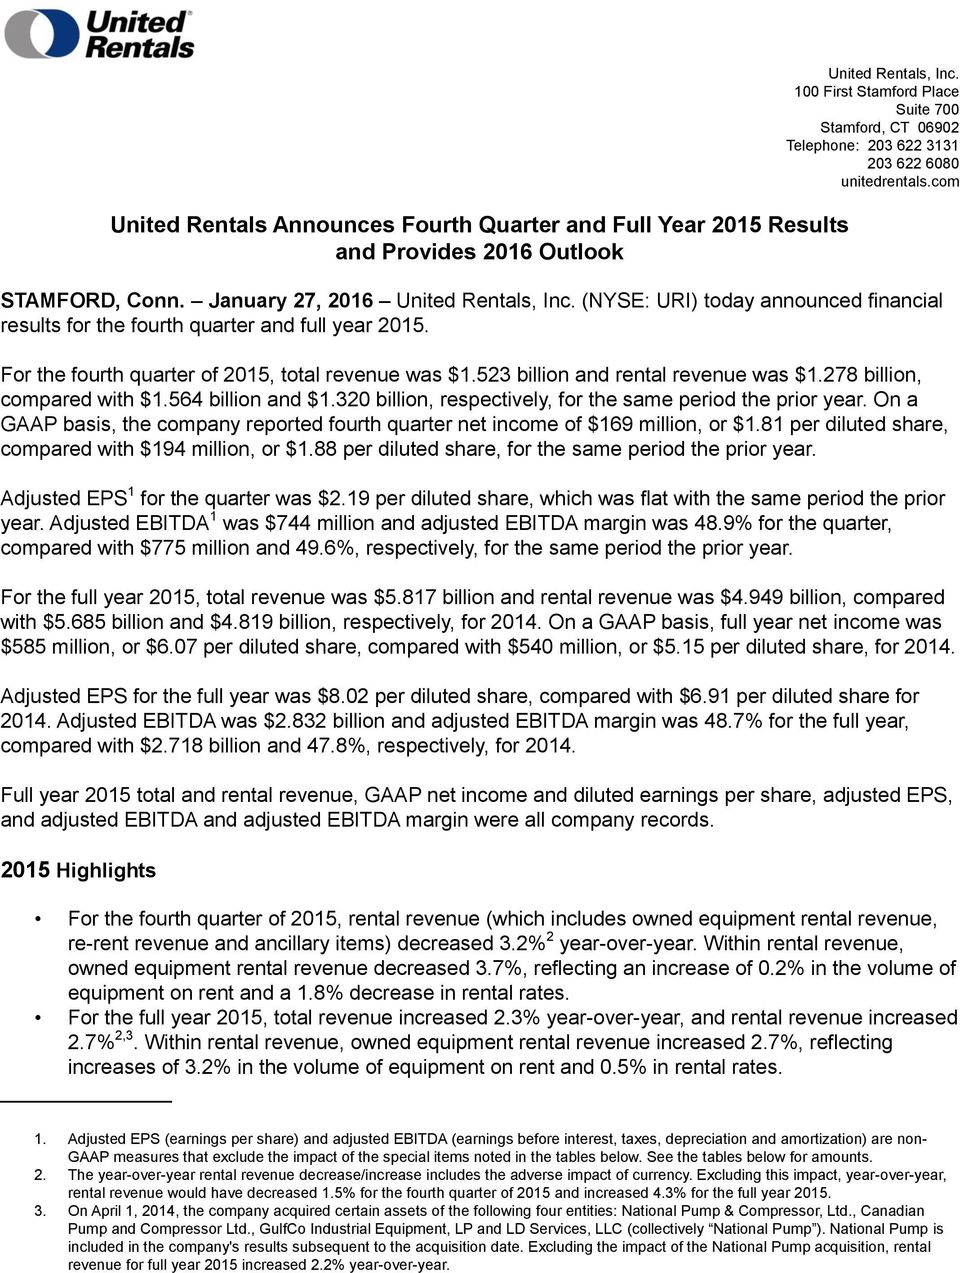 (NYSE: URI) today announced financial results for the fourth quarter and full year 2015. For the fourth quarter of 2015, total revenue was $1.523 billion and rental revenue was $1.